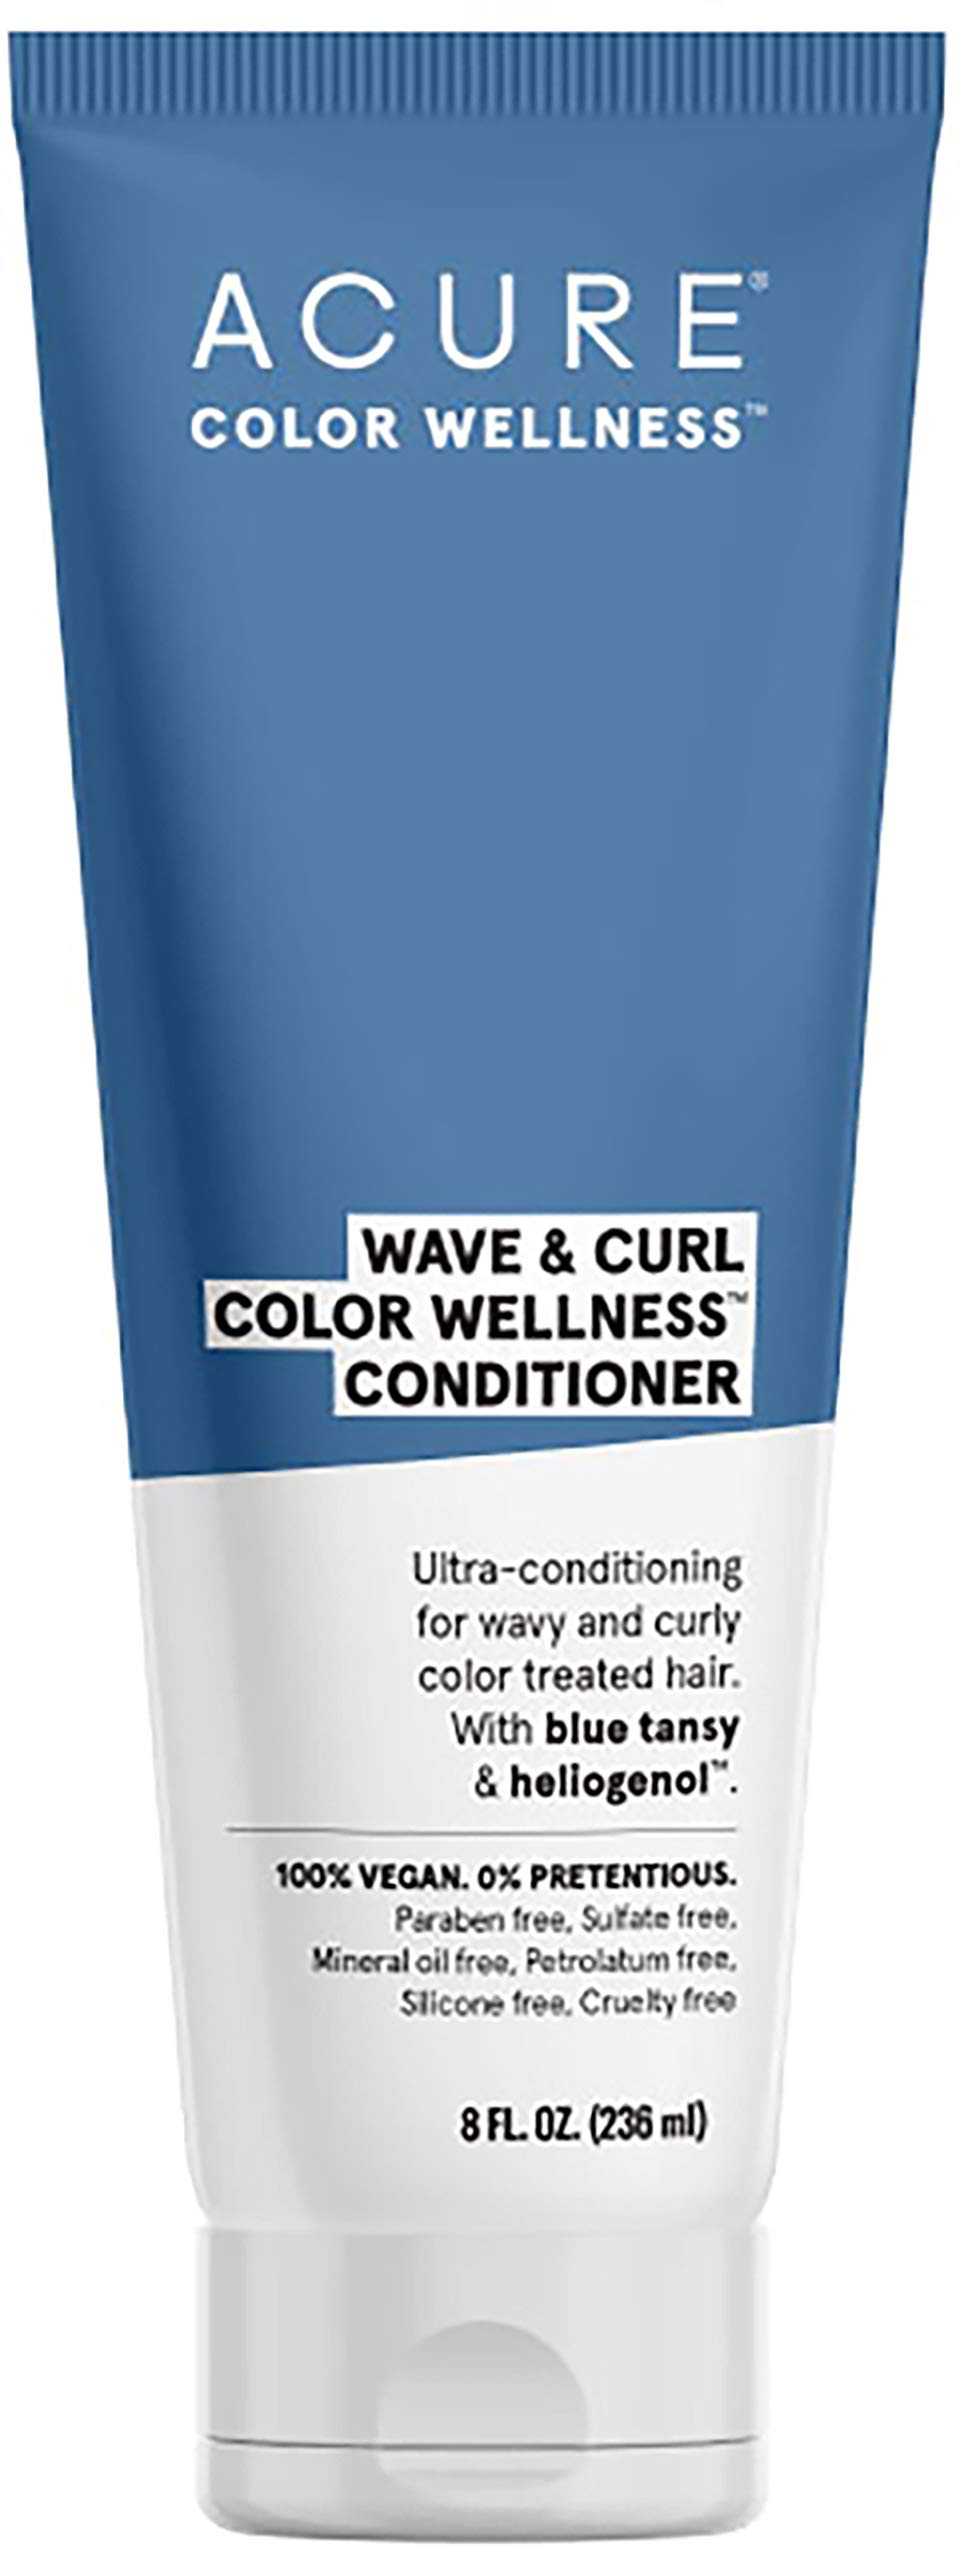 ACURE Wave & Curl Color Wellness Conditioner| 100% Vegan | Performance Driven Hair Care | Blue Tansy & Sunflower Seed Extract - Ultra-Conditioning For Wavy & Curly Color Treated Hair | 8 Fl Oz